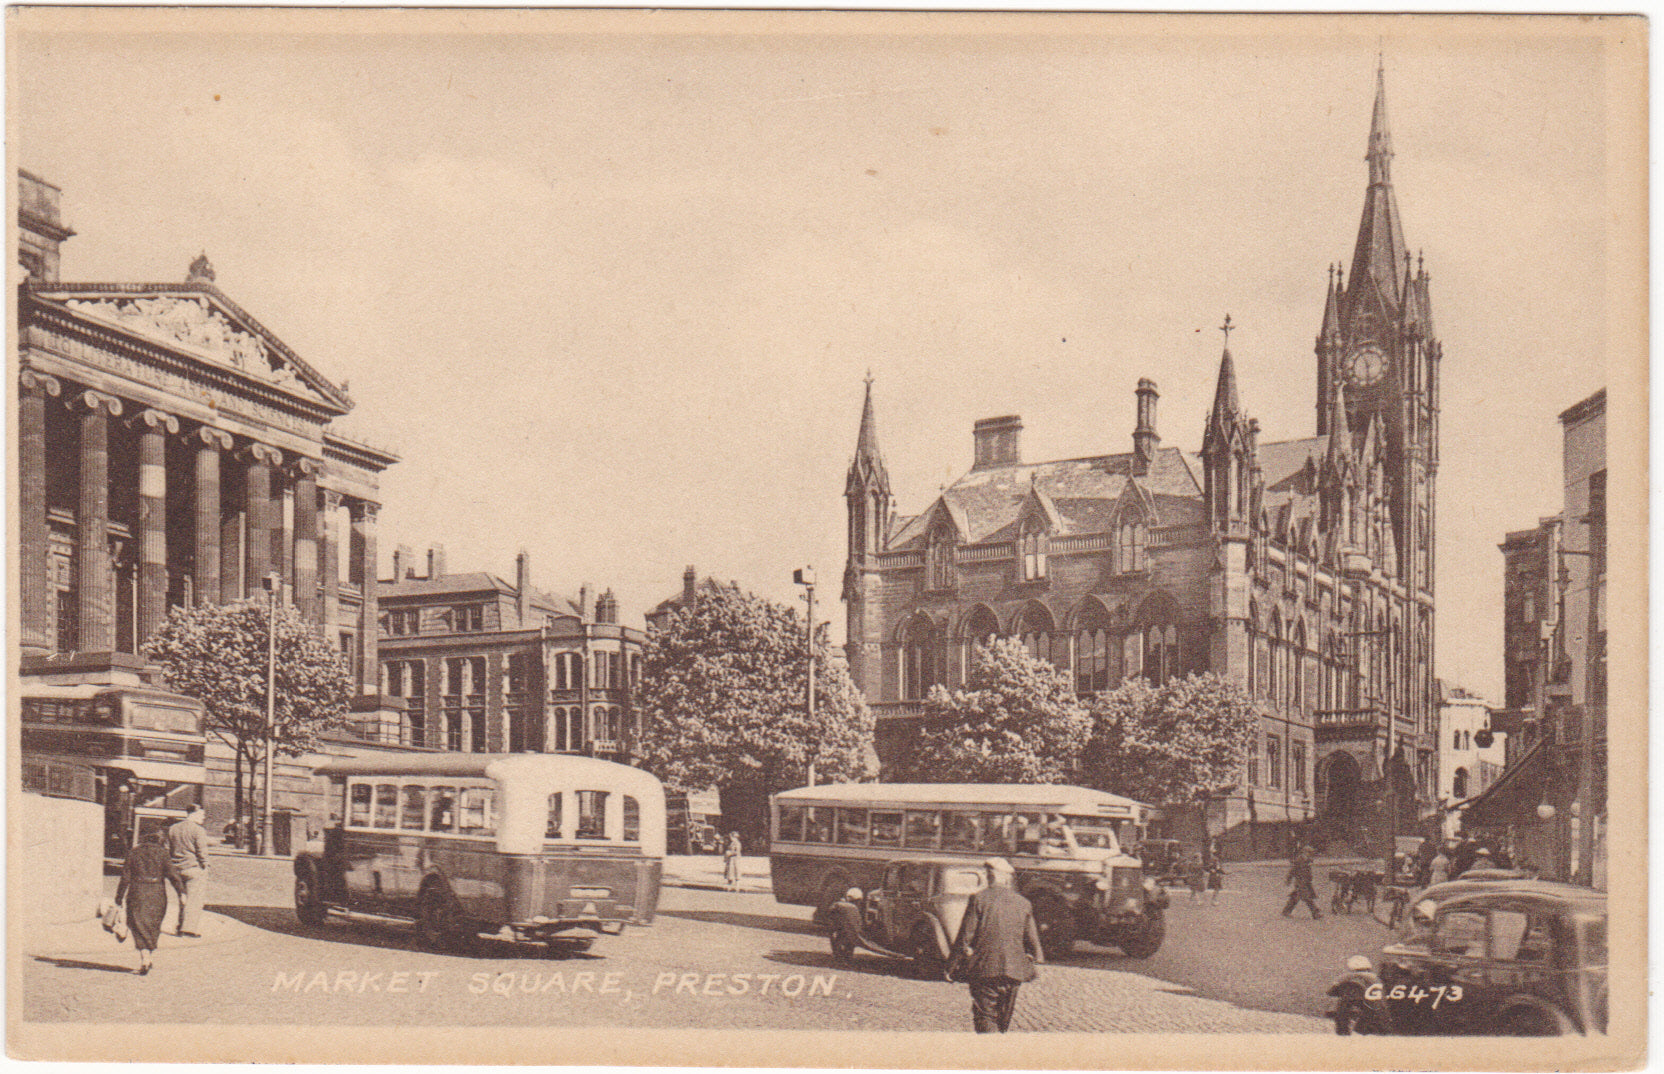 Market Square, Preston